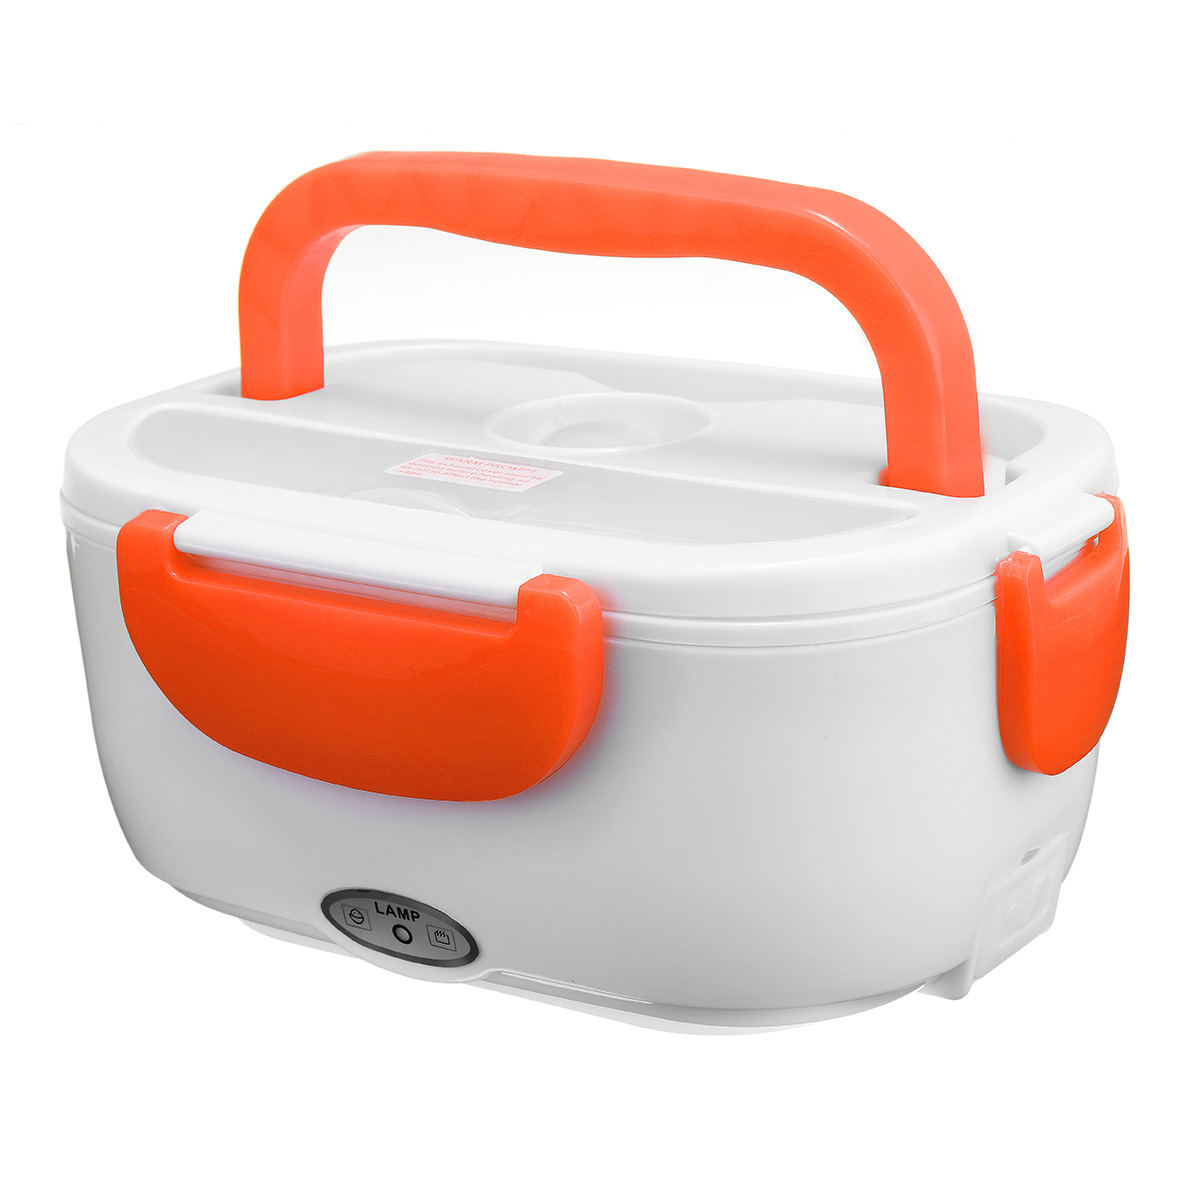 12/110/220V Portable Electric Heated <font><b>Lunch</b></font> <font><b>Box</b></font> Bento Boxes Car <font><b>Food</b></font> Rice <font><b>Container</b></font> Warmer For School Office Home Dinnerware image